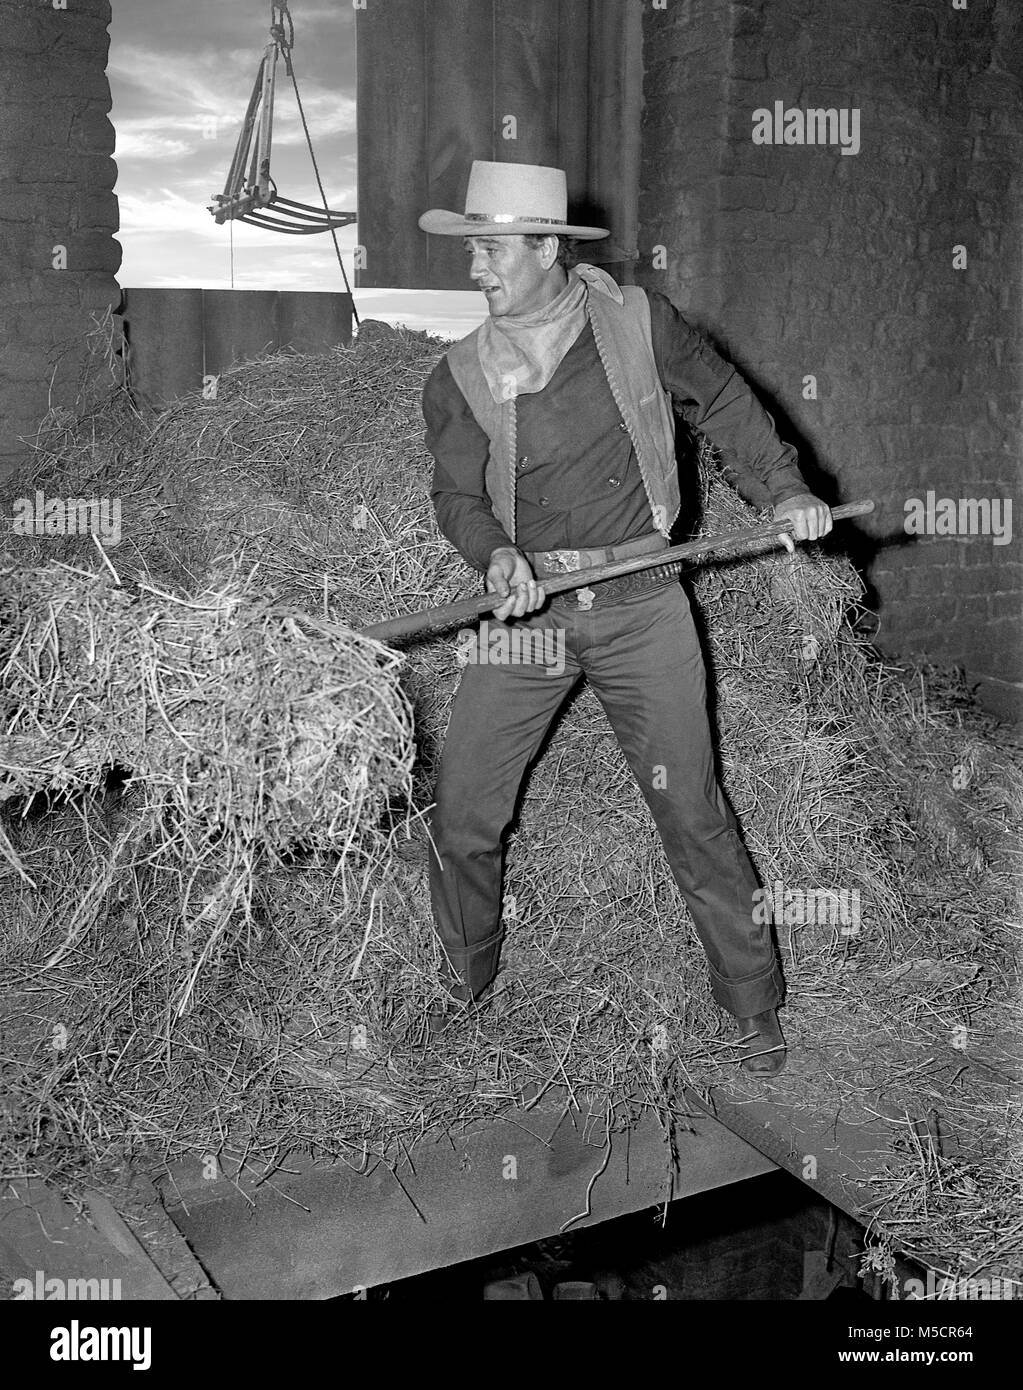 John Wayne in hayloft from the Movie Angel and the Badman. Image from original camera negative. - Stock Image